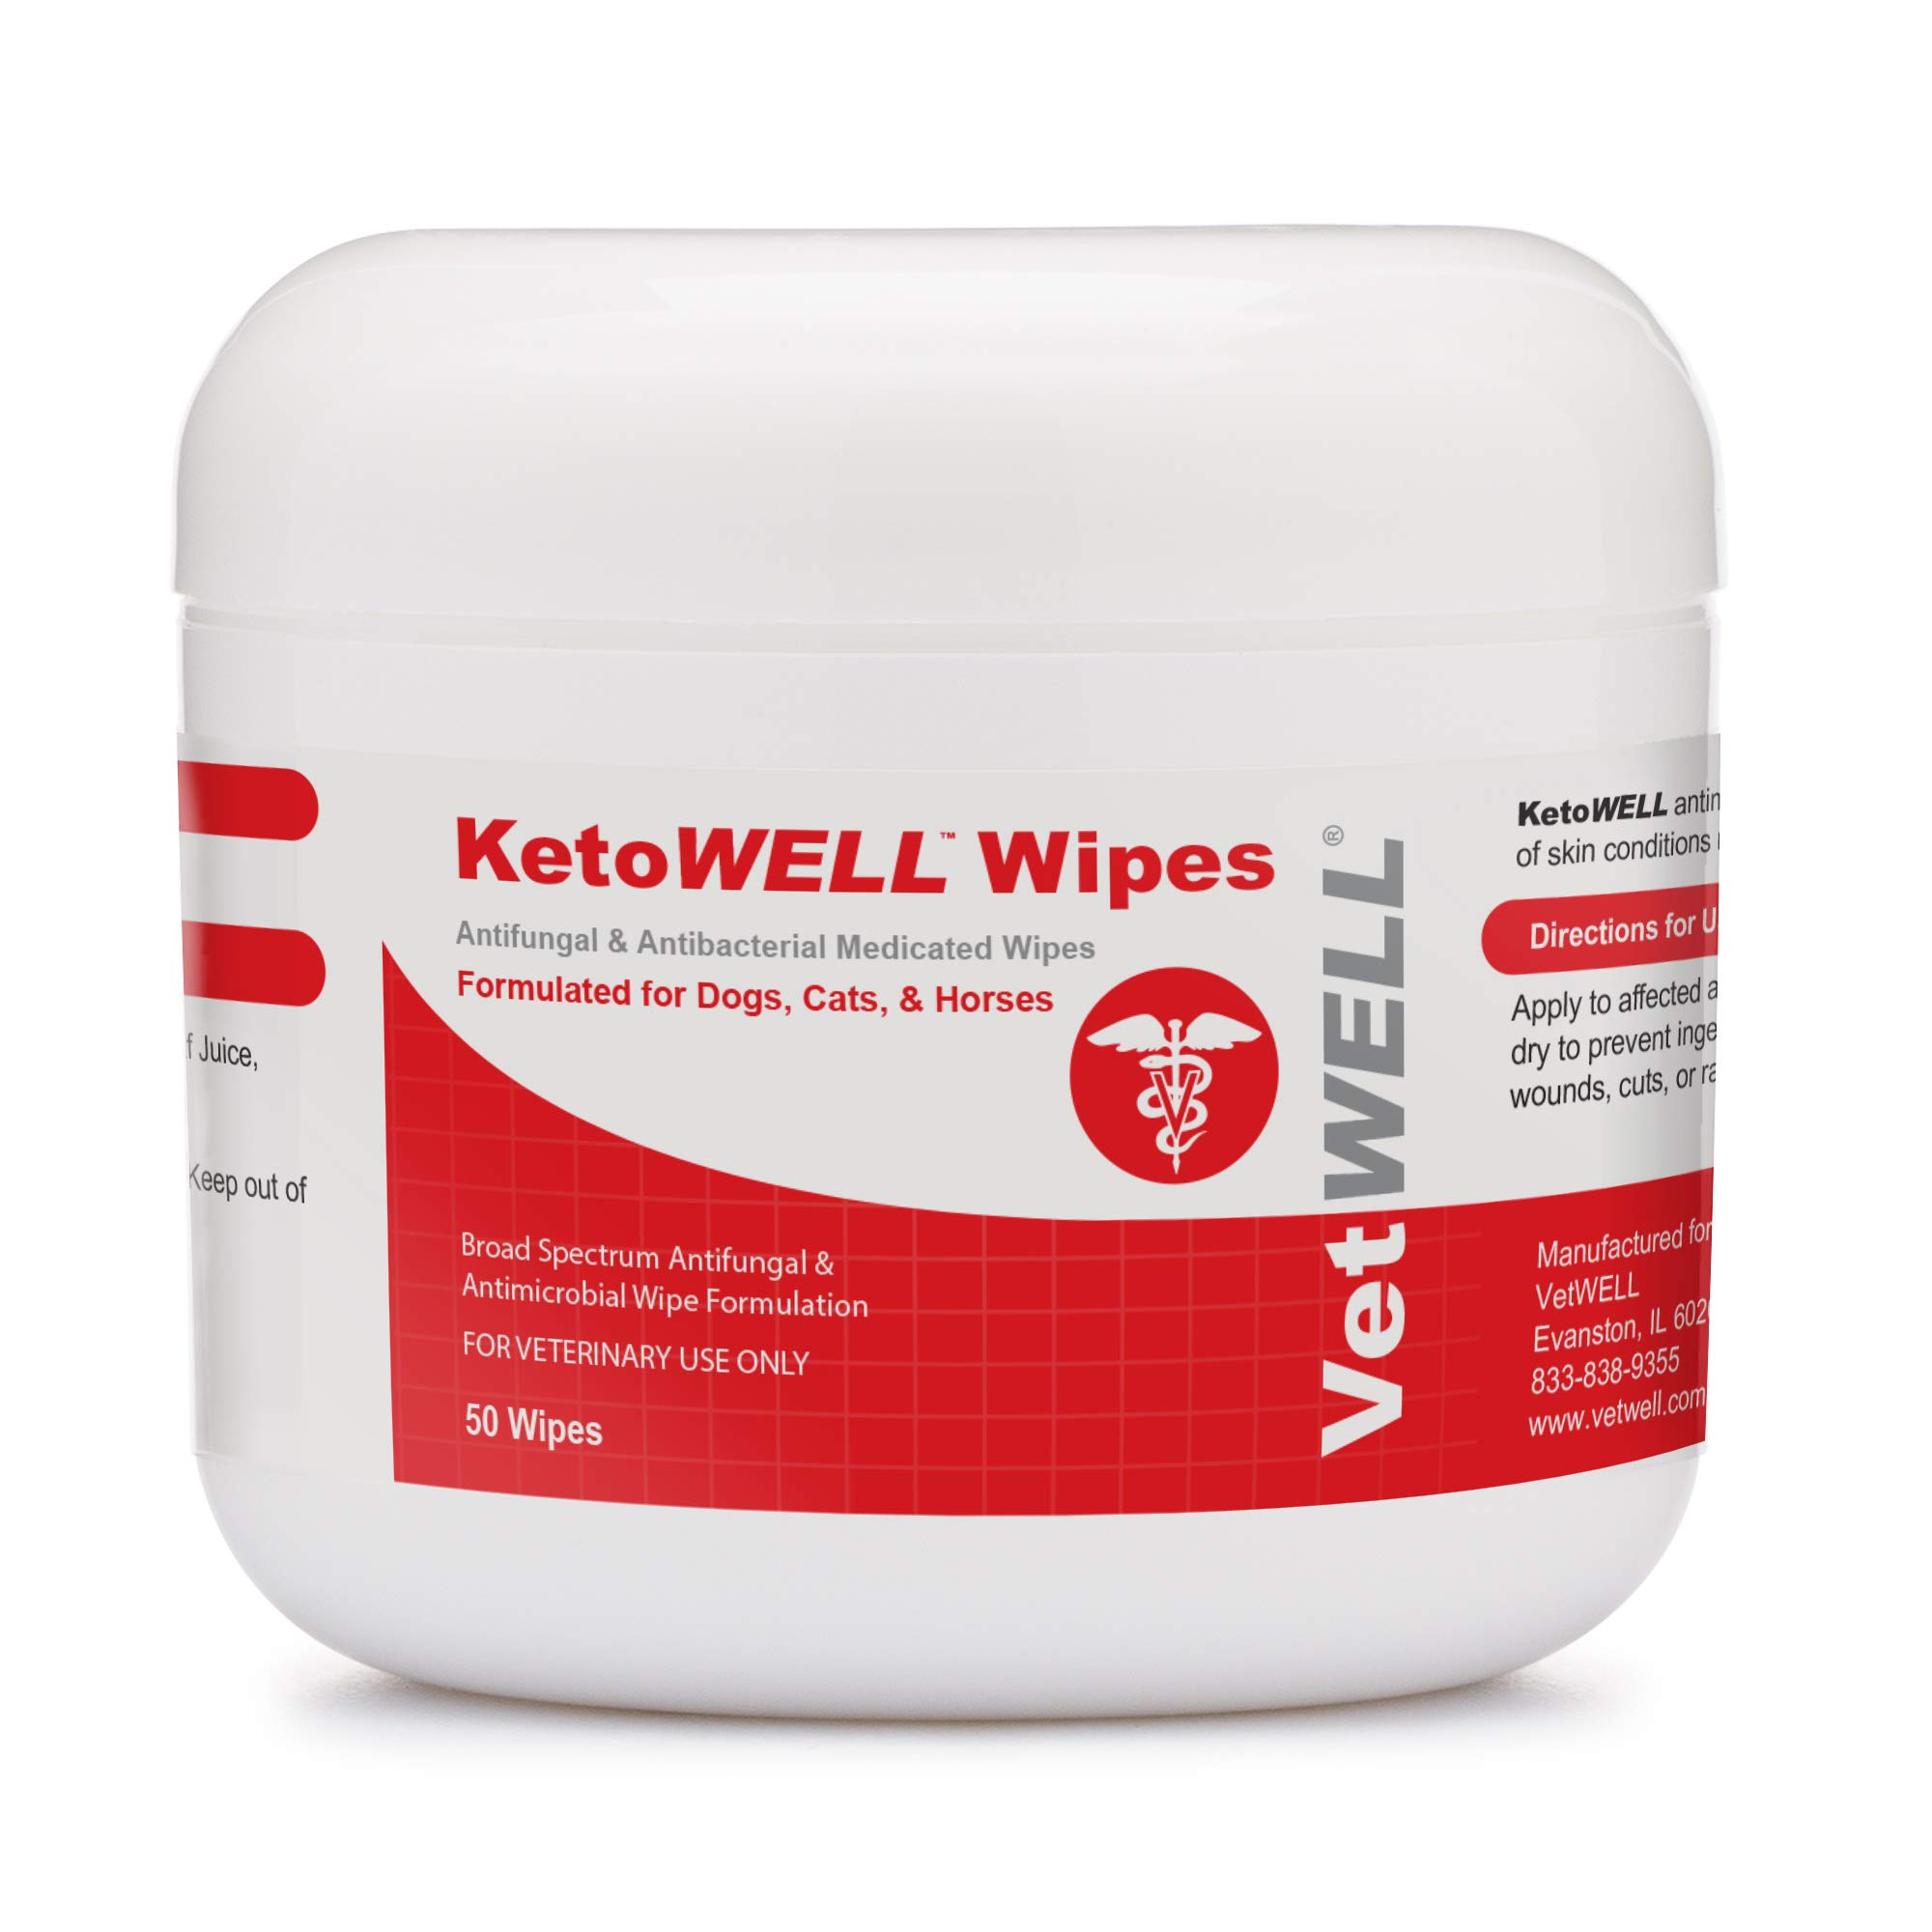 KetoWELL Chlorhexidine Wipes with Ketoconazole for Dogs & Cats Medicated Pet Wipes for Hot Spots, Infections, Acne & Pyoderma - 50 Count